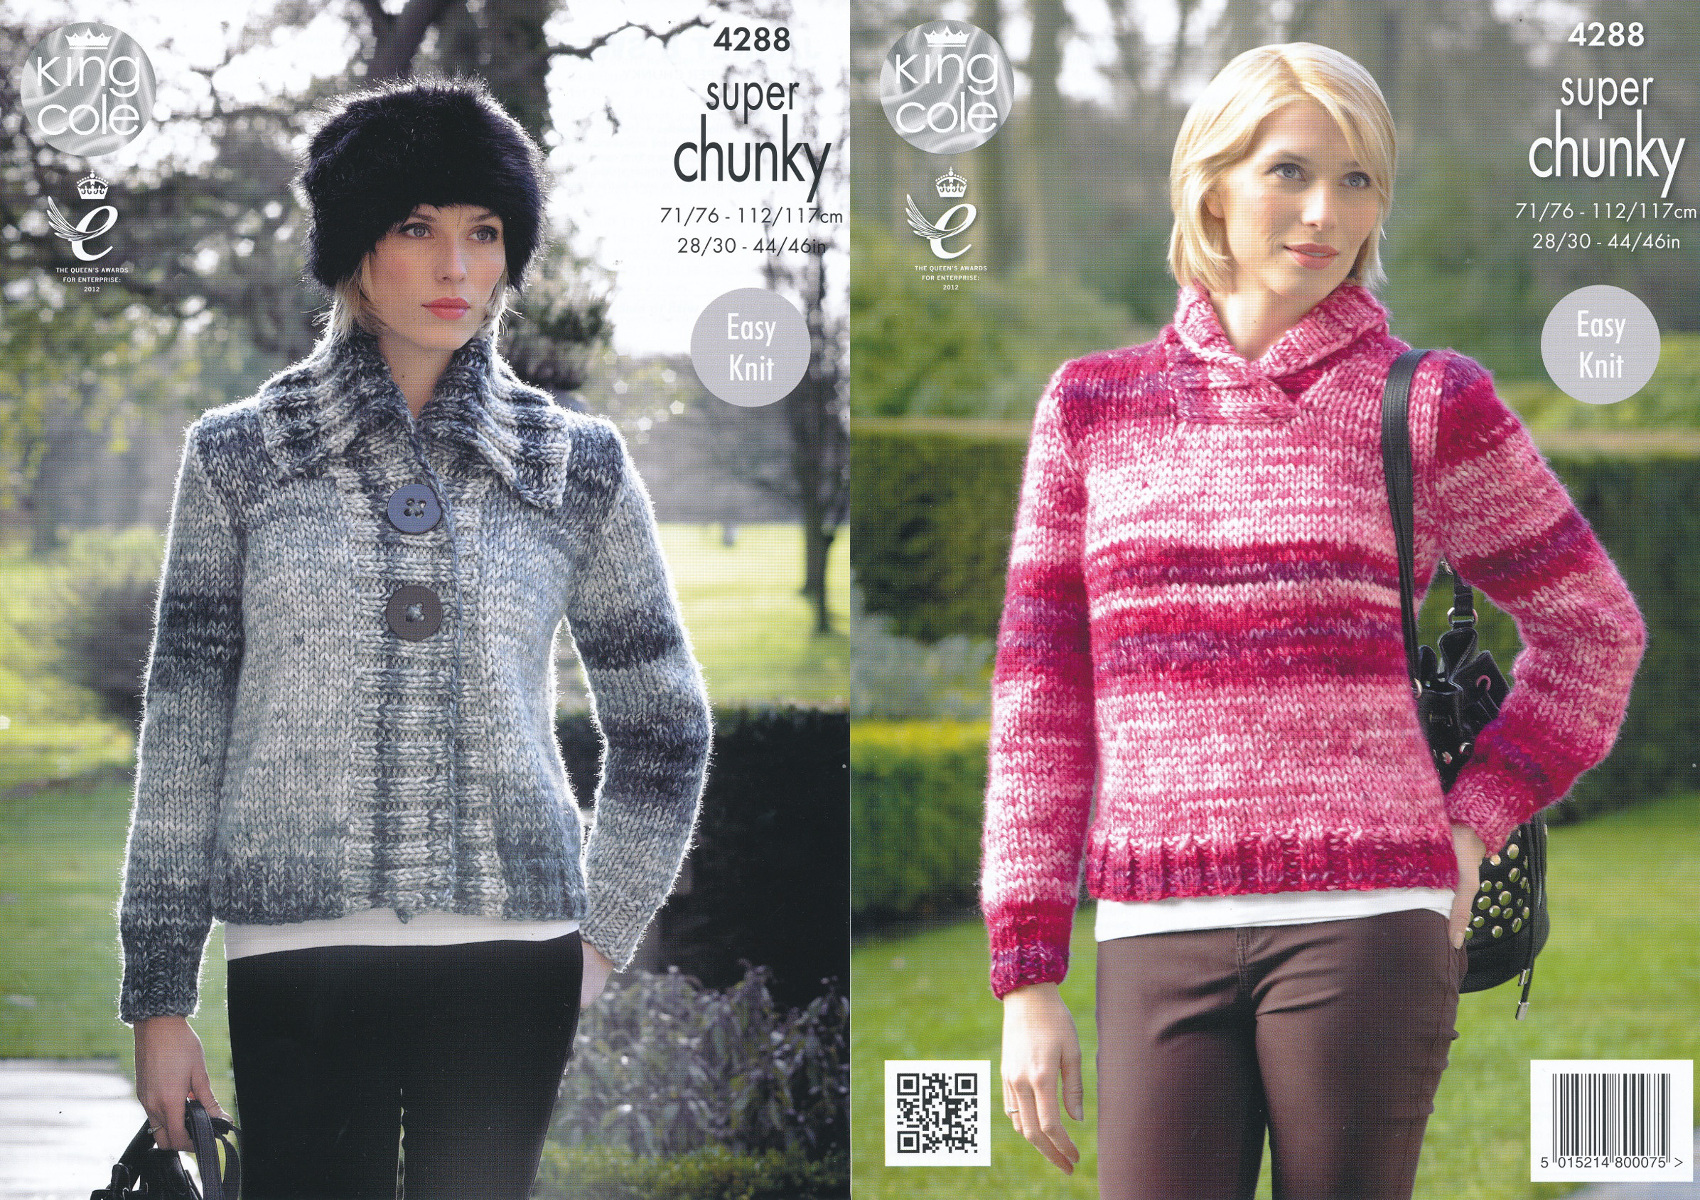 Ladies super chunky knitting pattern king cole ribbed jacket item description this easy knit king cole super chunky knitting pattern bankloansurffo Gallery